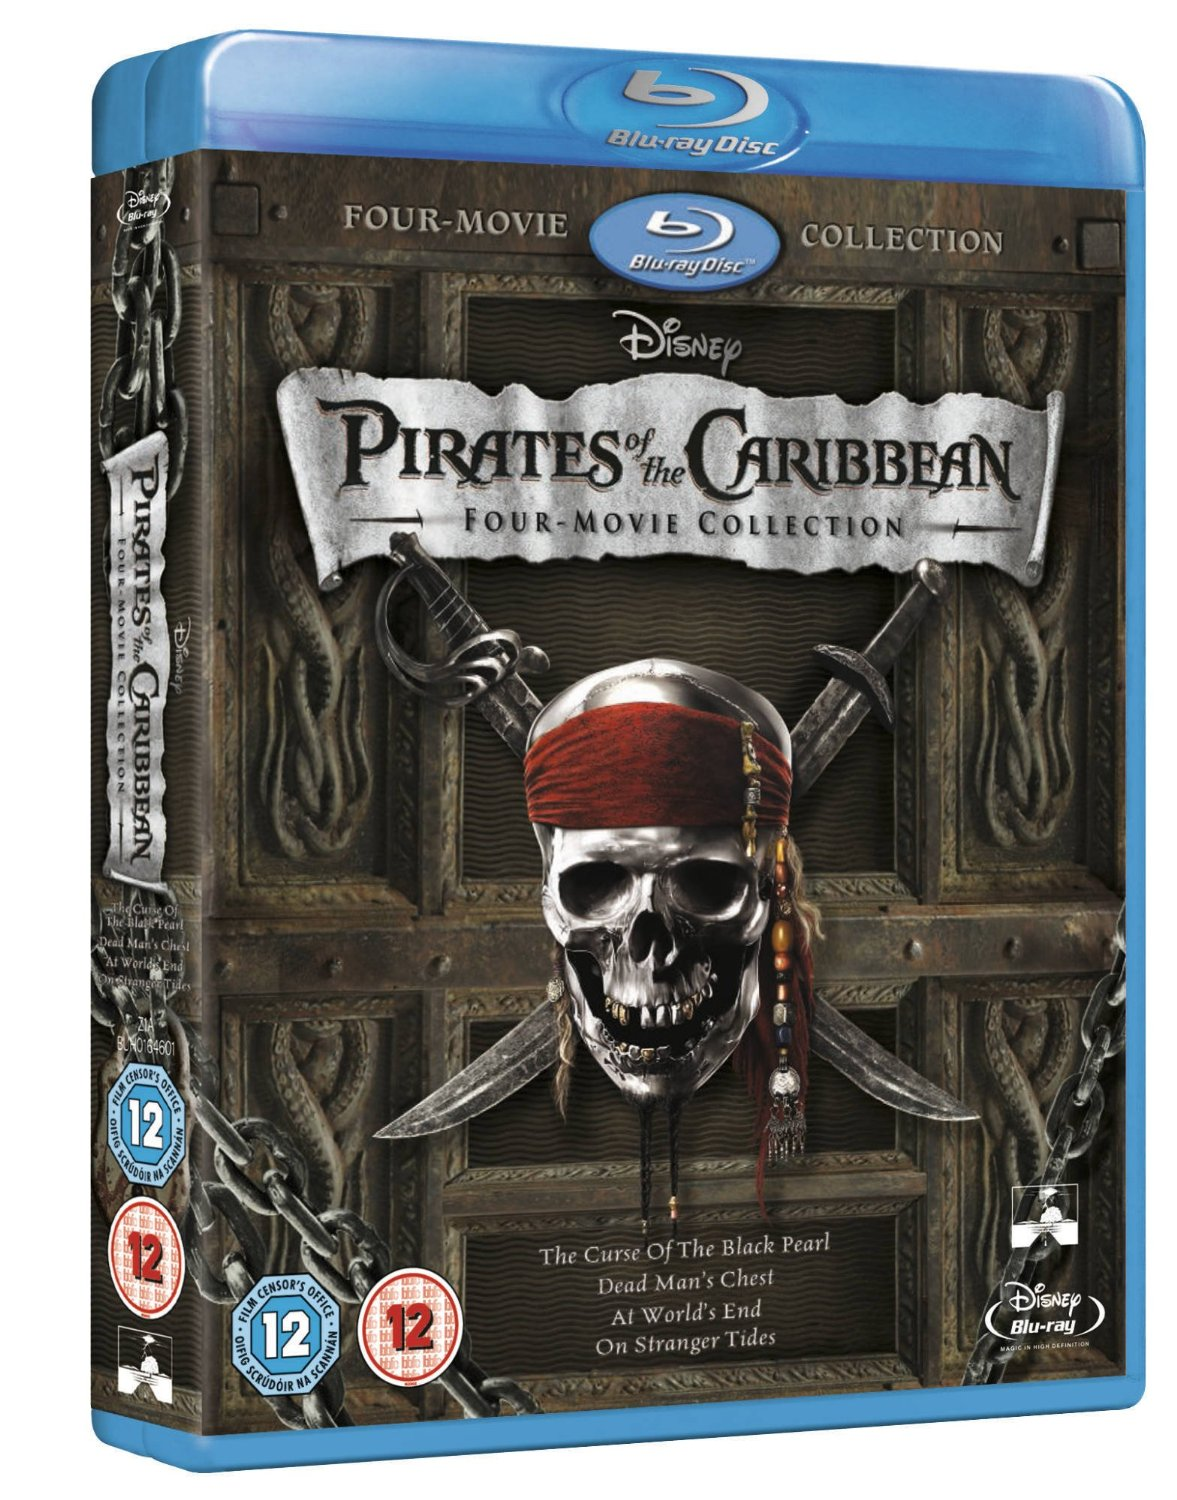 Pirates of the Caribbean 1-4 Collection Disney Blu-ray Brand New (Not Sealed)